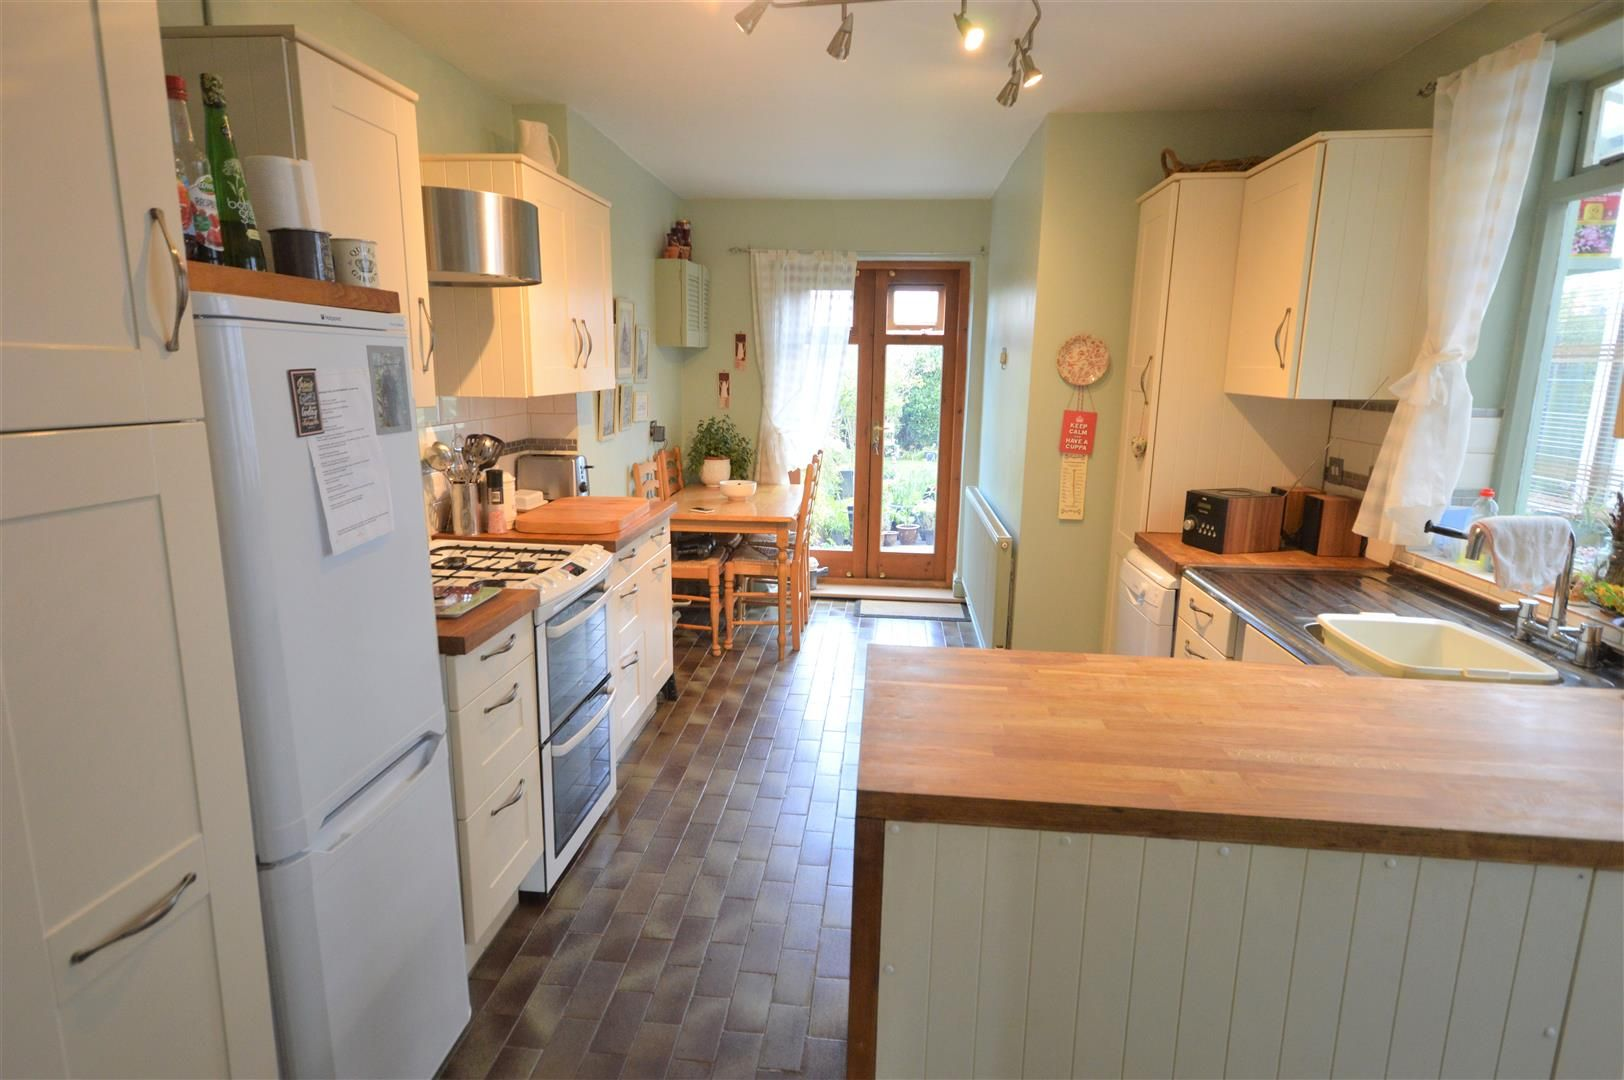 3 bed end of terrace for sale in Leominster 5